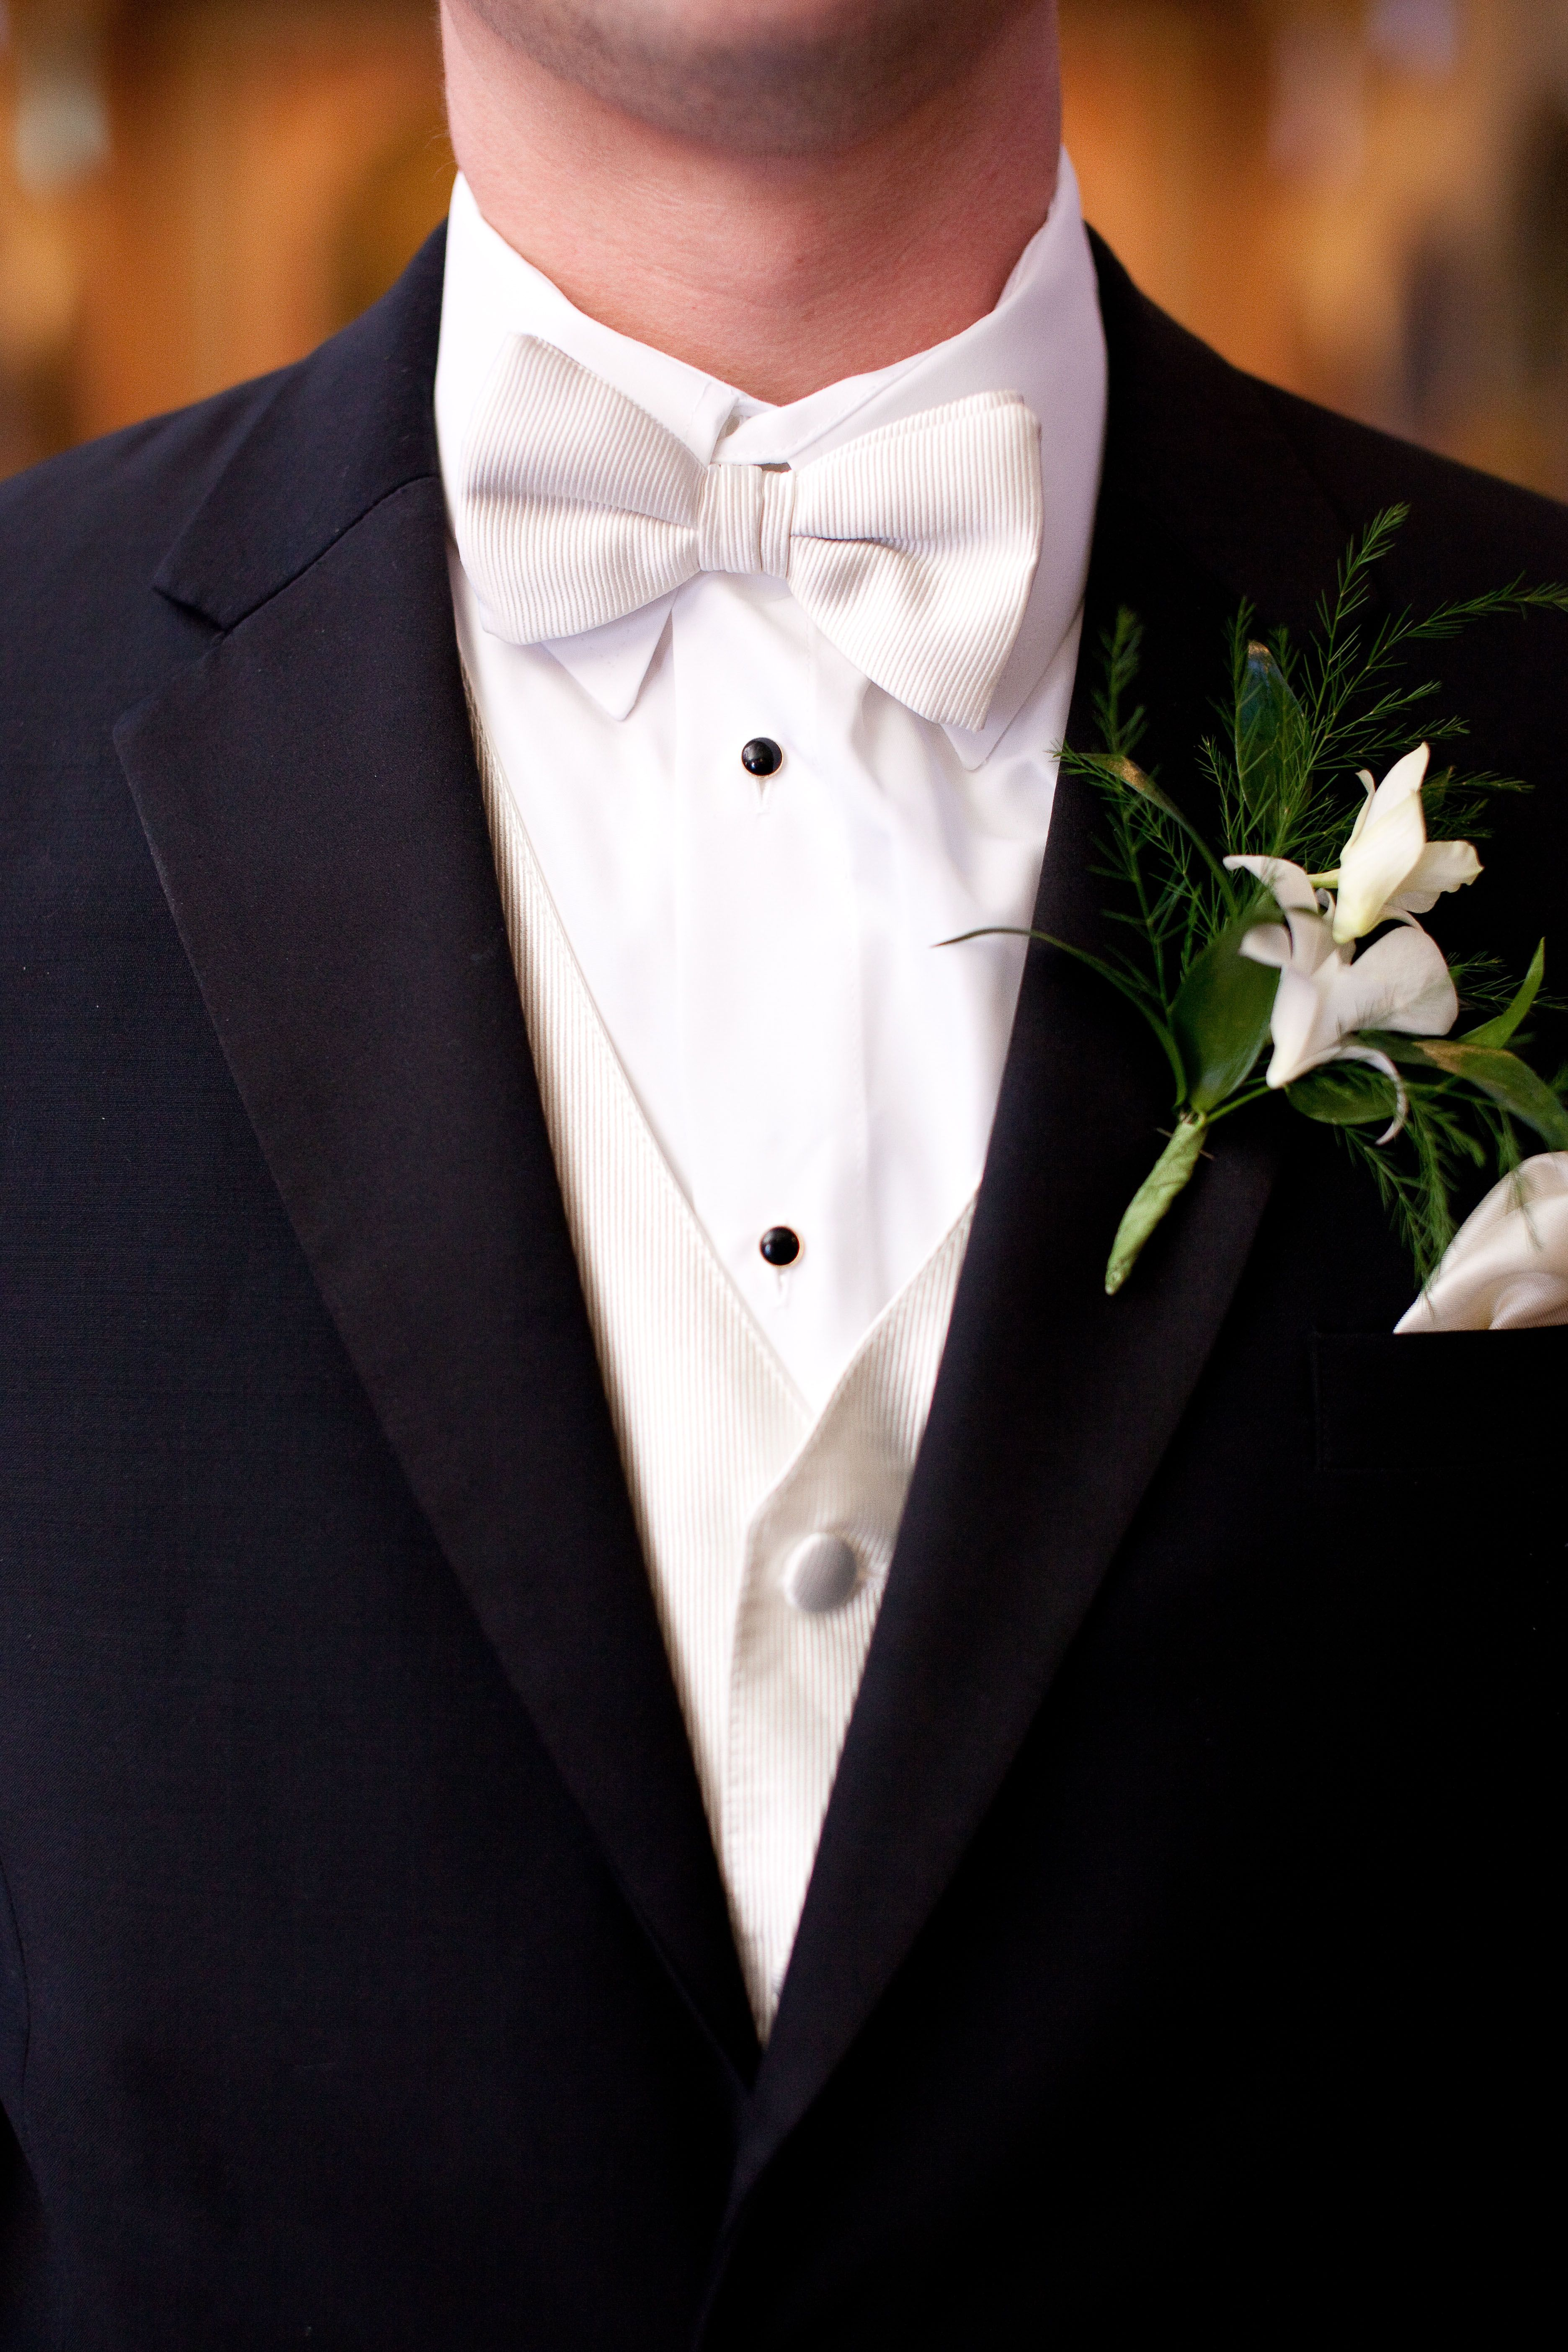 Groom in Black Tux with White Bow Tie | Wedding Ideas! | Pinterest ...